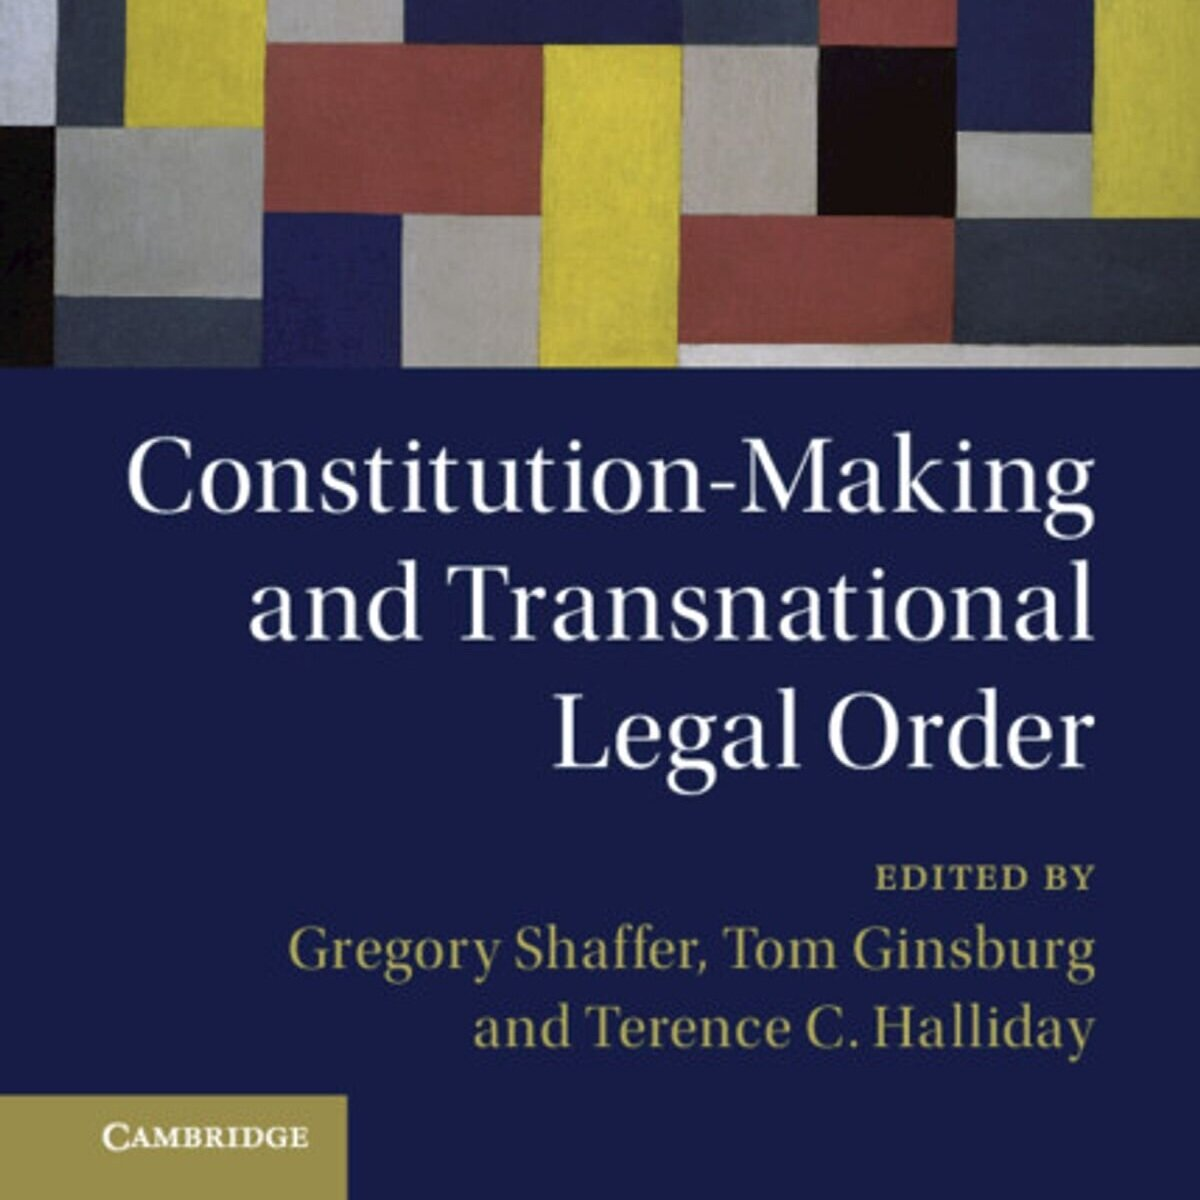 Gregory Shaffer, Tom Ginsburg & Terence C. Halliday - Constitution-Making and Transnational Legal Order